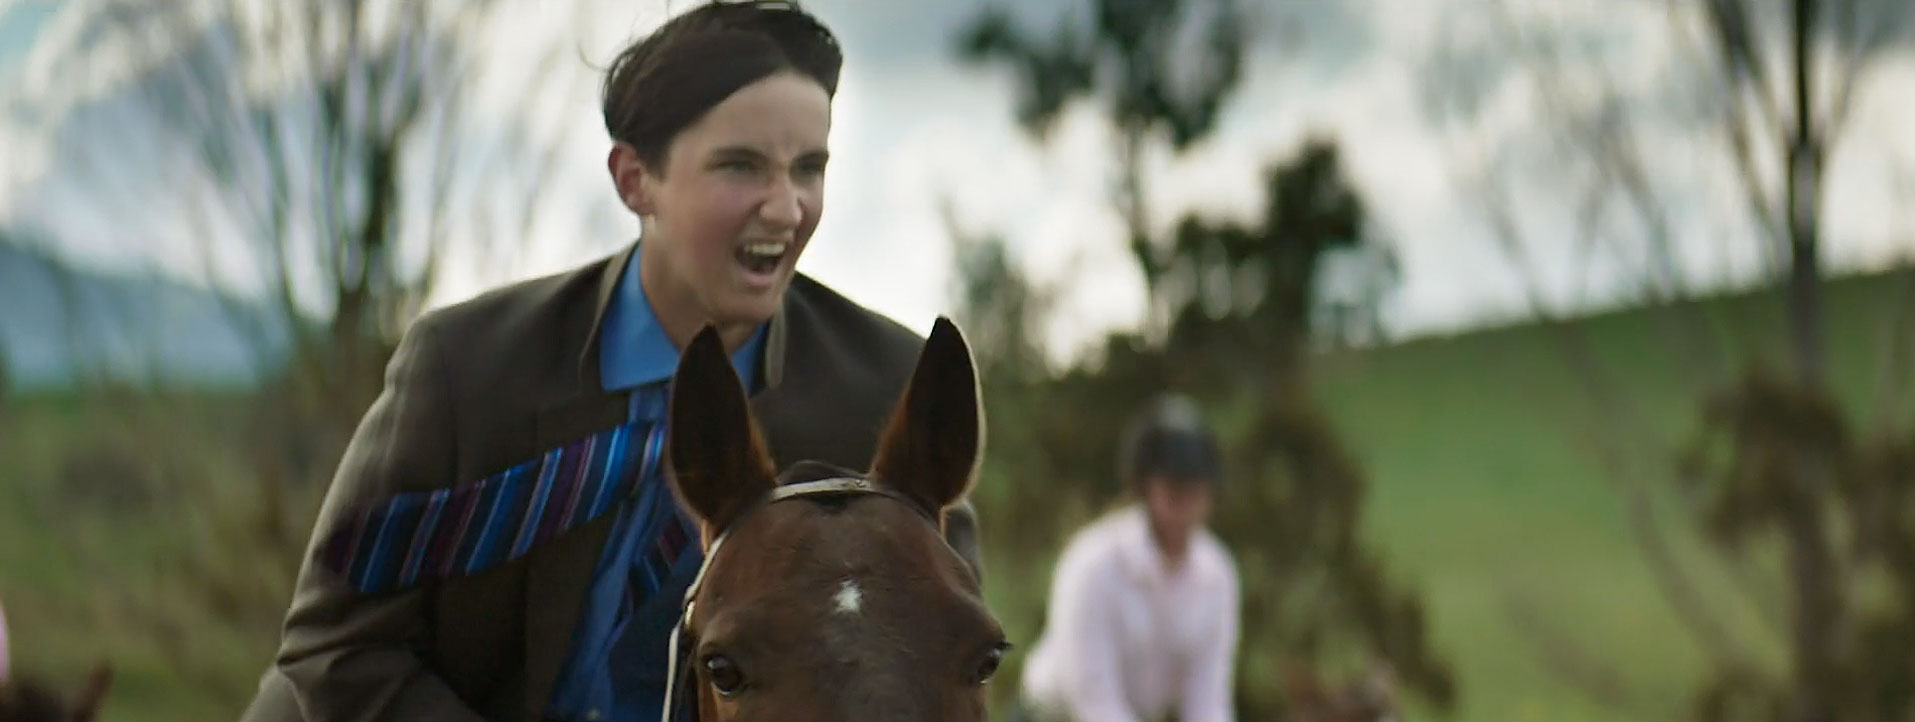 TRL makes racehorse ownership accessible to all in launch campaign via Humble Productions + TSE